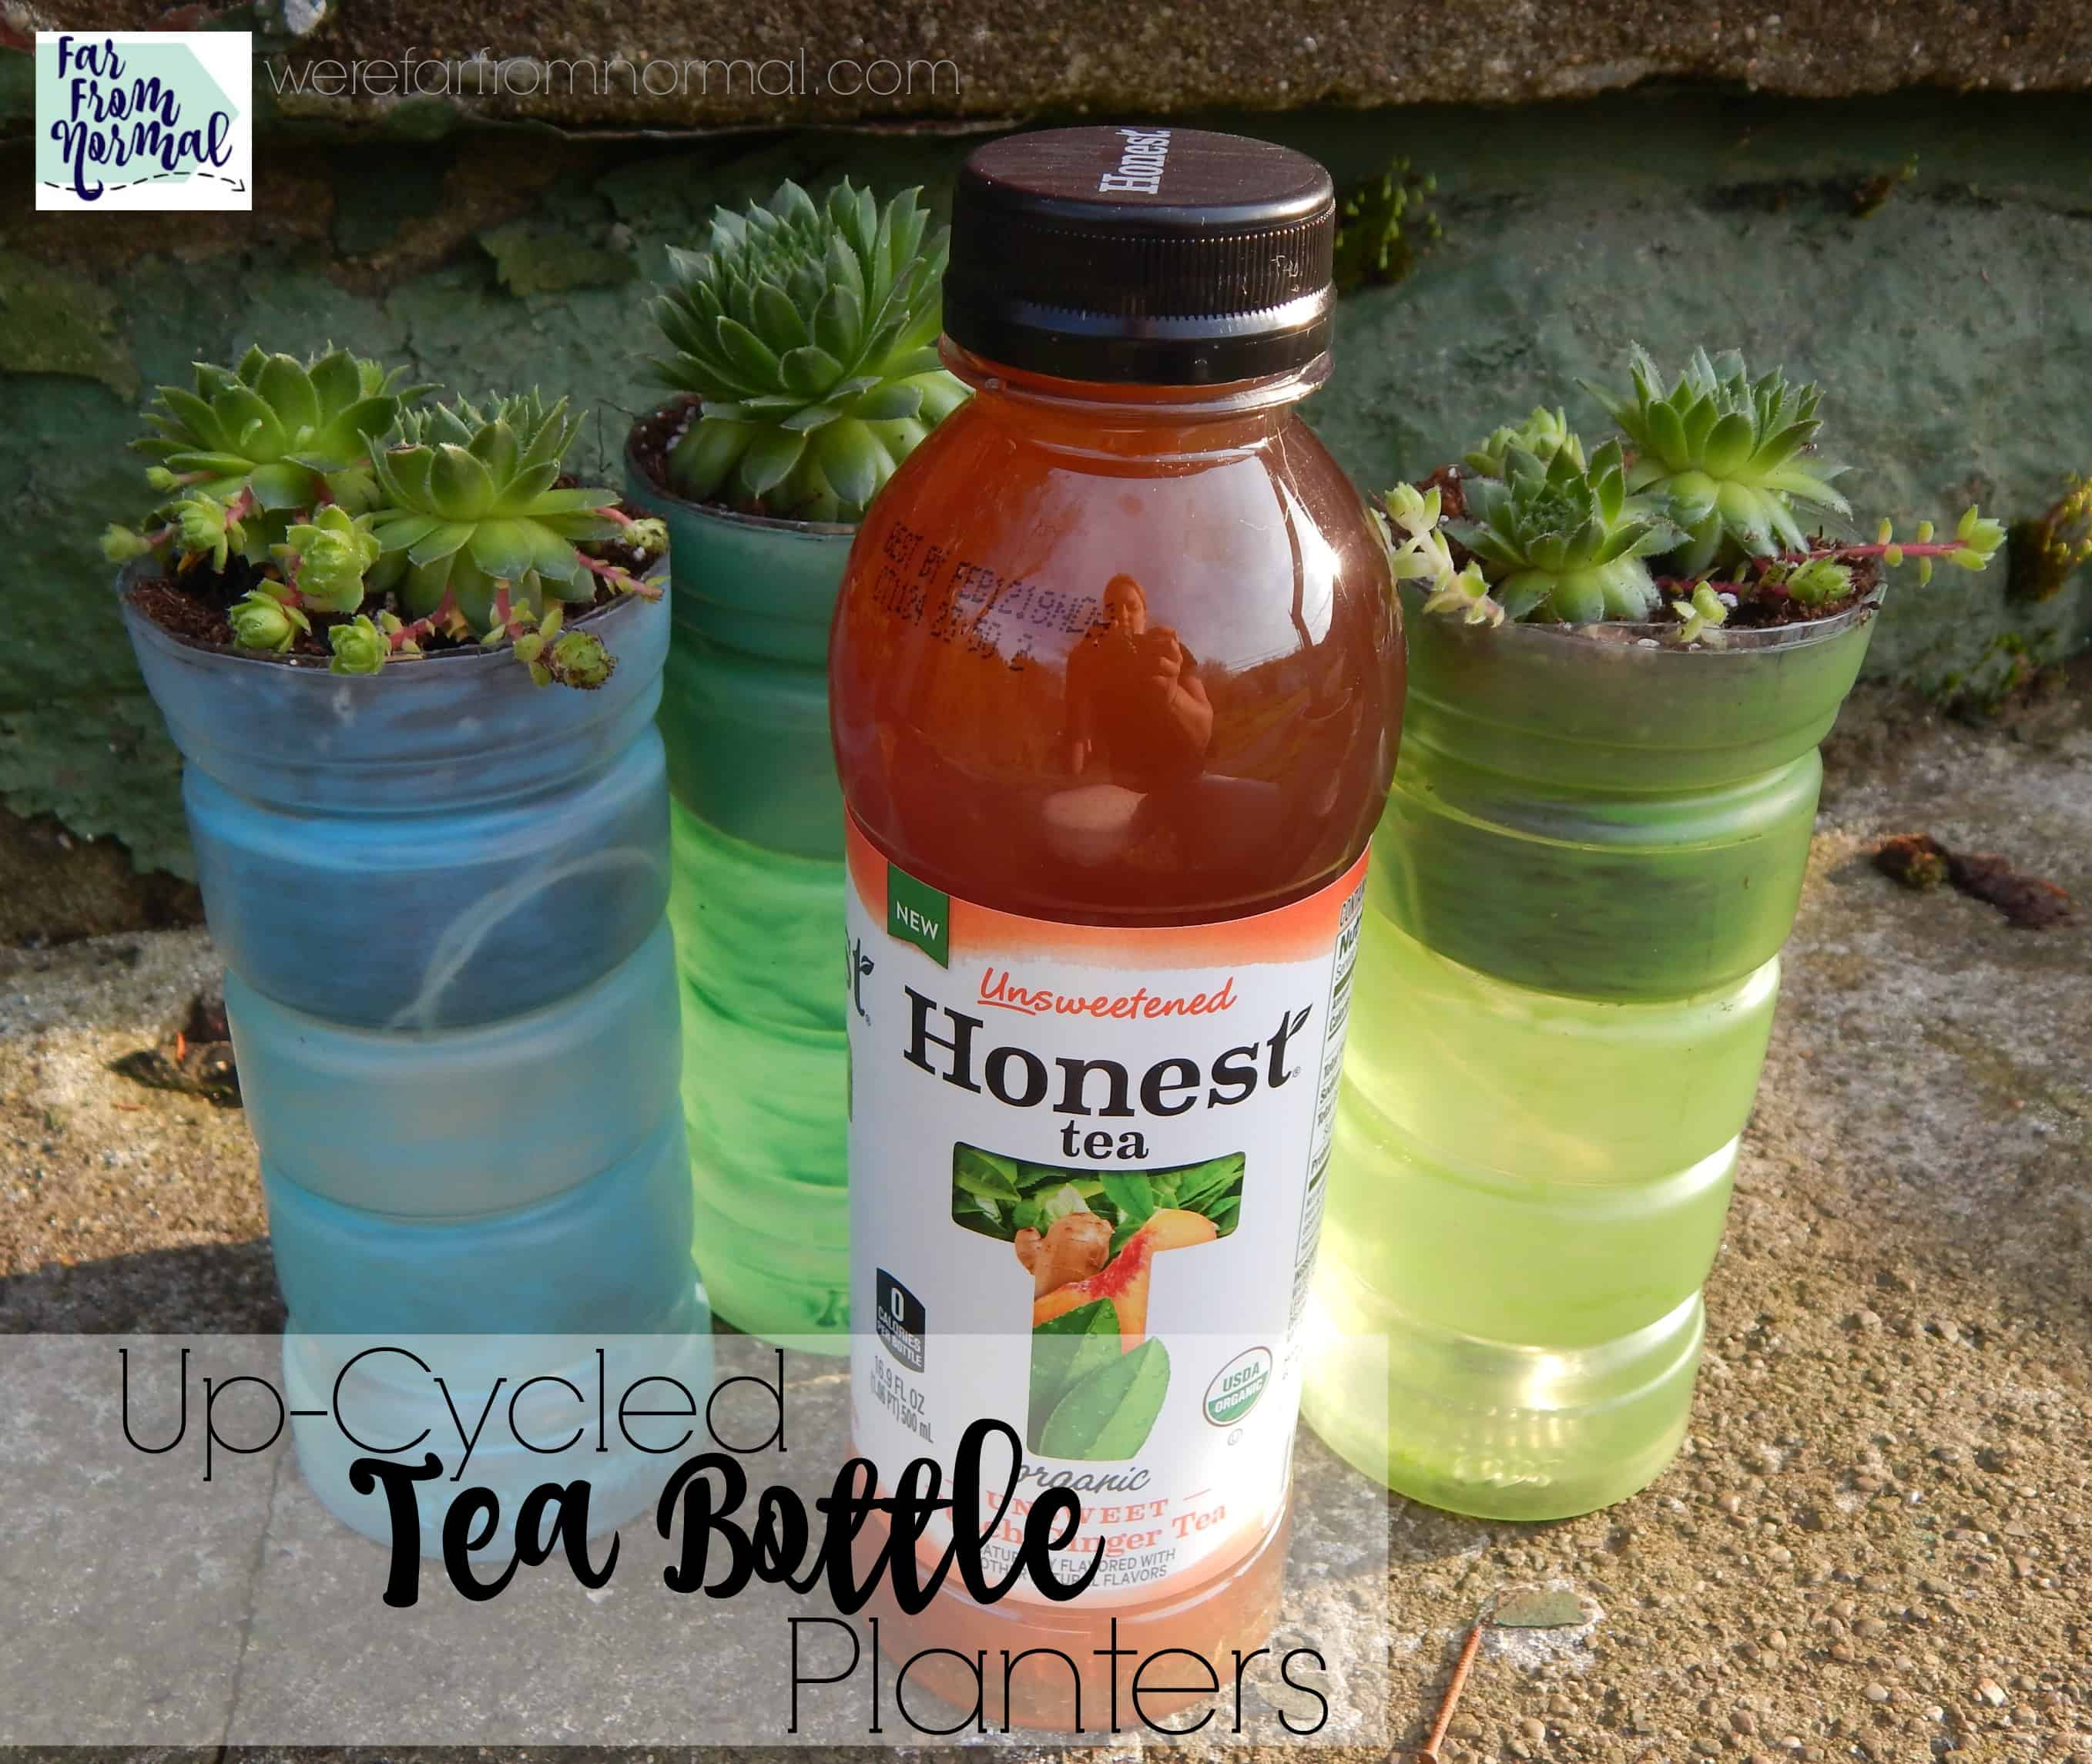 Up-Cycled Tea Bottle Planters